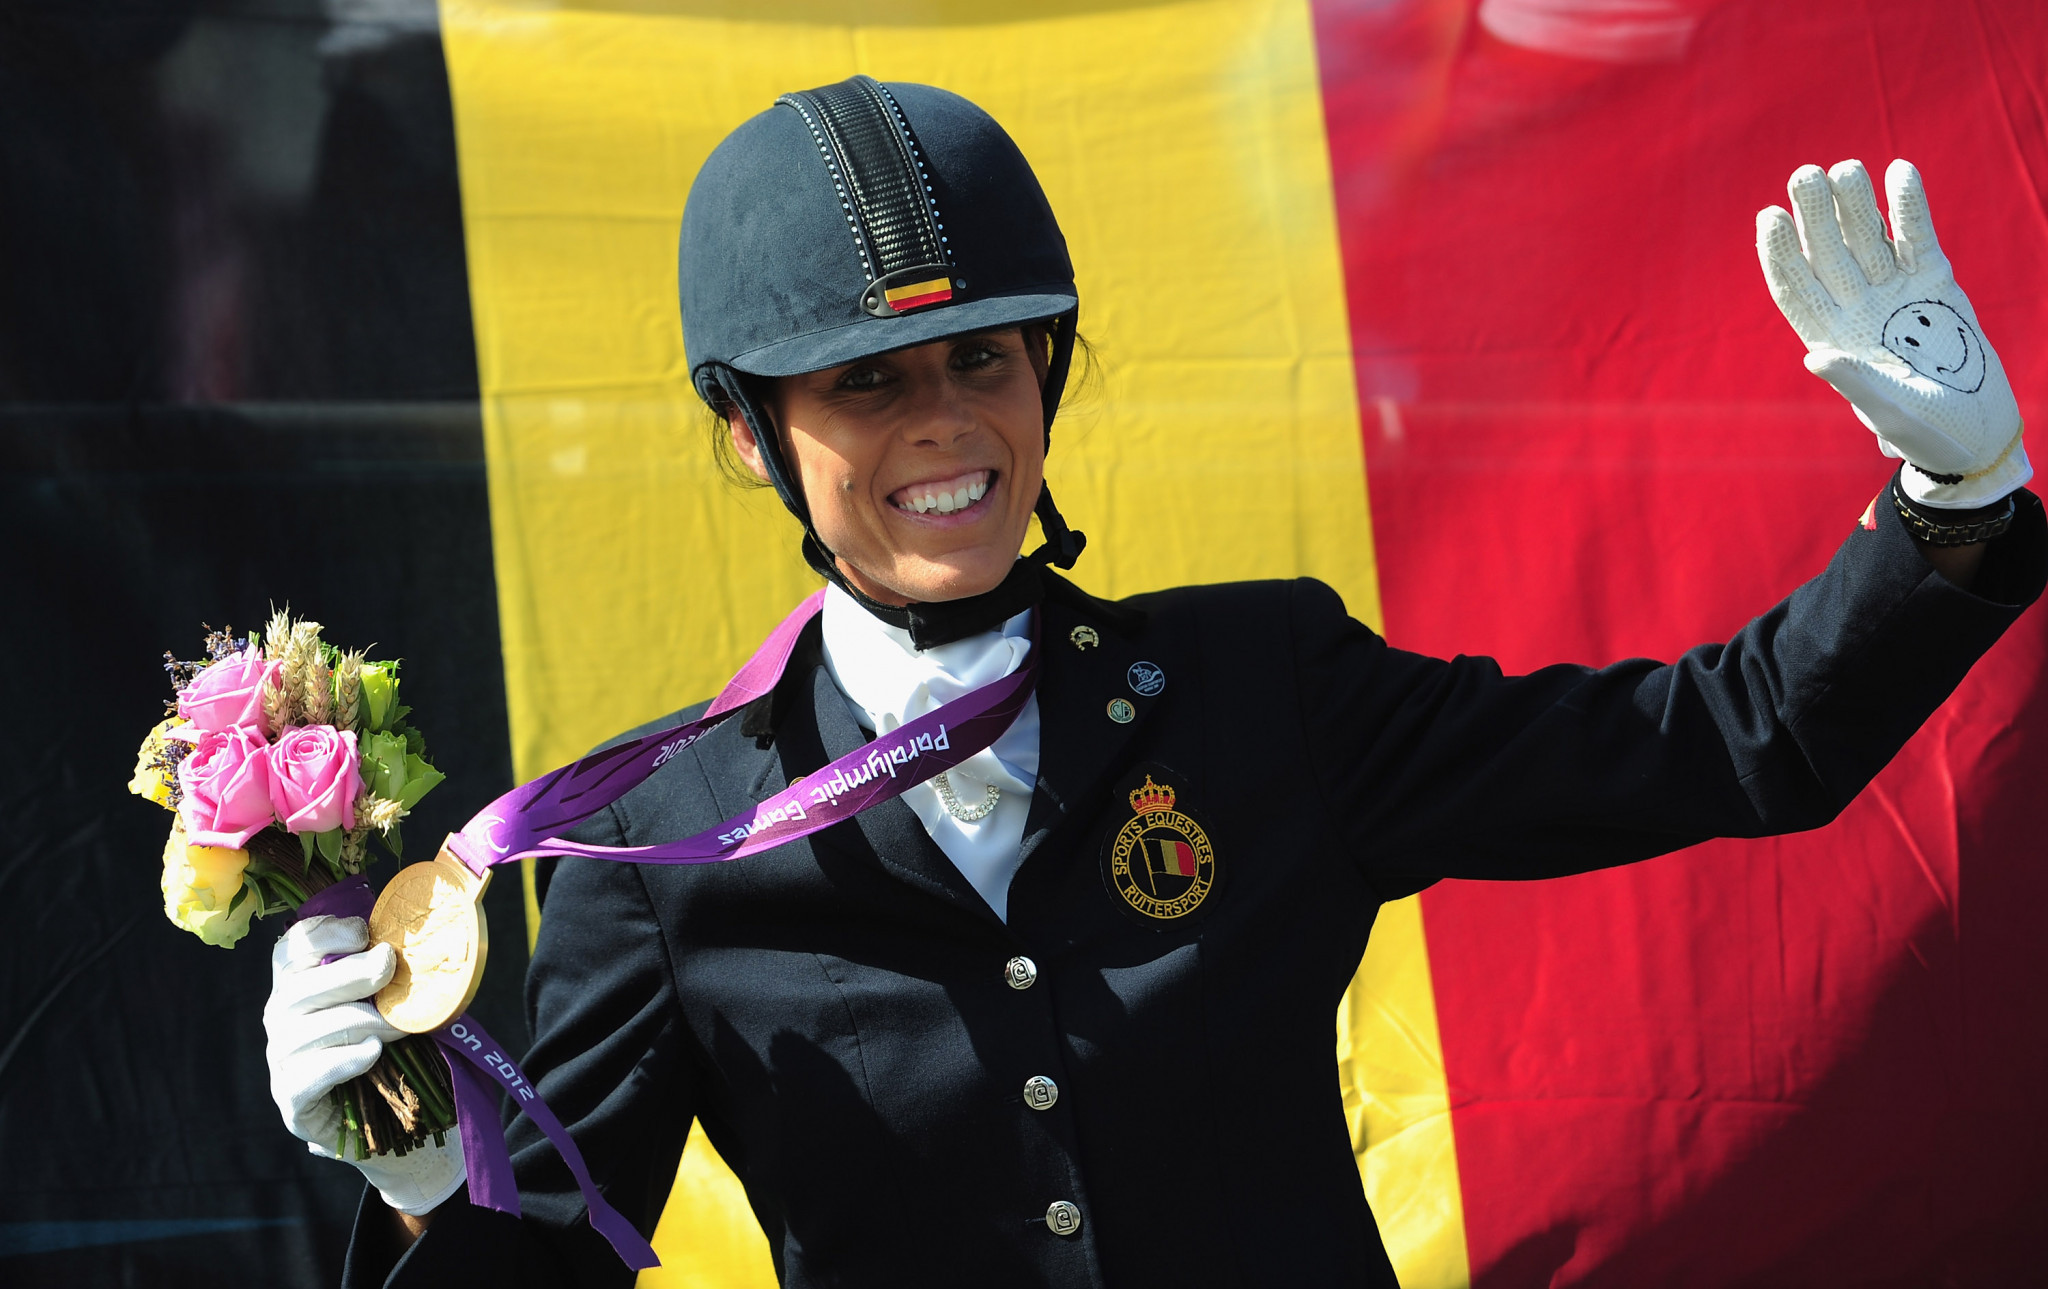 George and Vanhove to lead Belgium in Tokyo 2020 Paralympics Parade of Nations